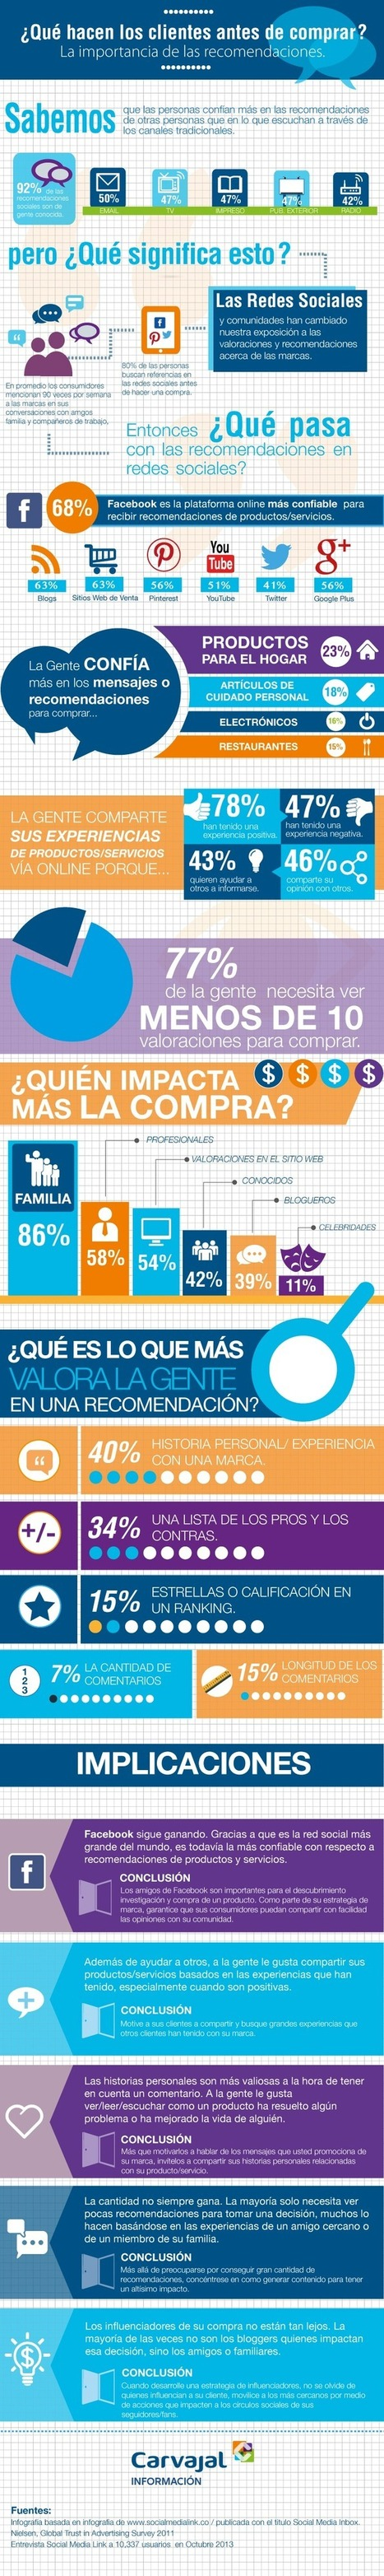 Qué hacen los clientes antes de comprar #infografia #infographic #marketing | Seo, Social Media Marketing | Scoop.it